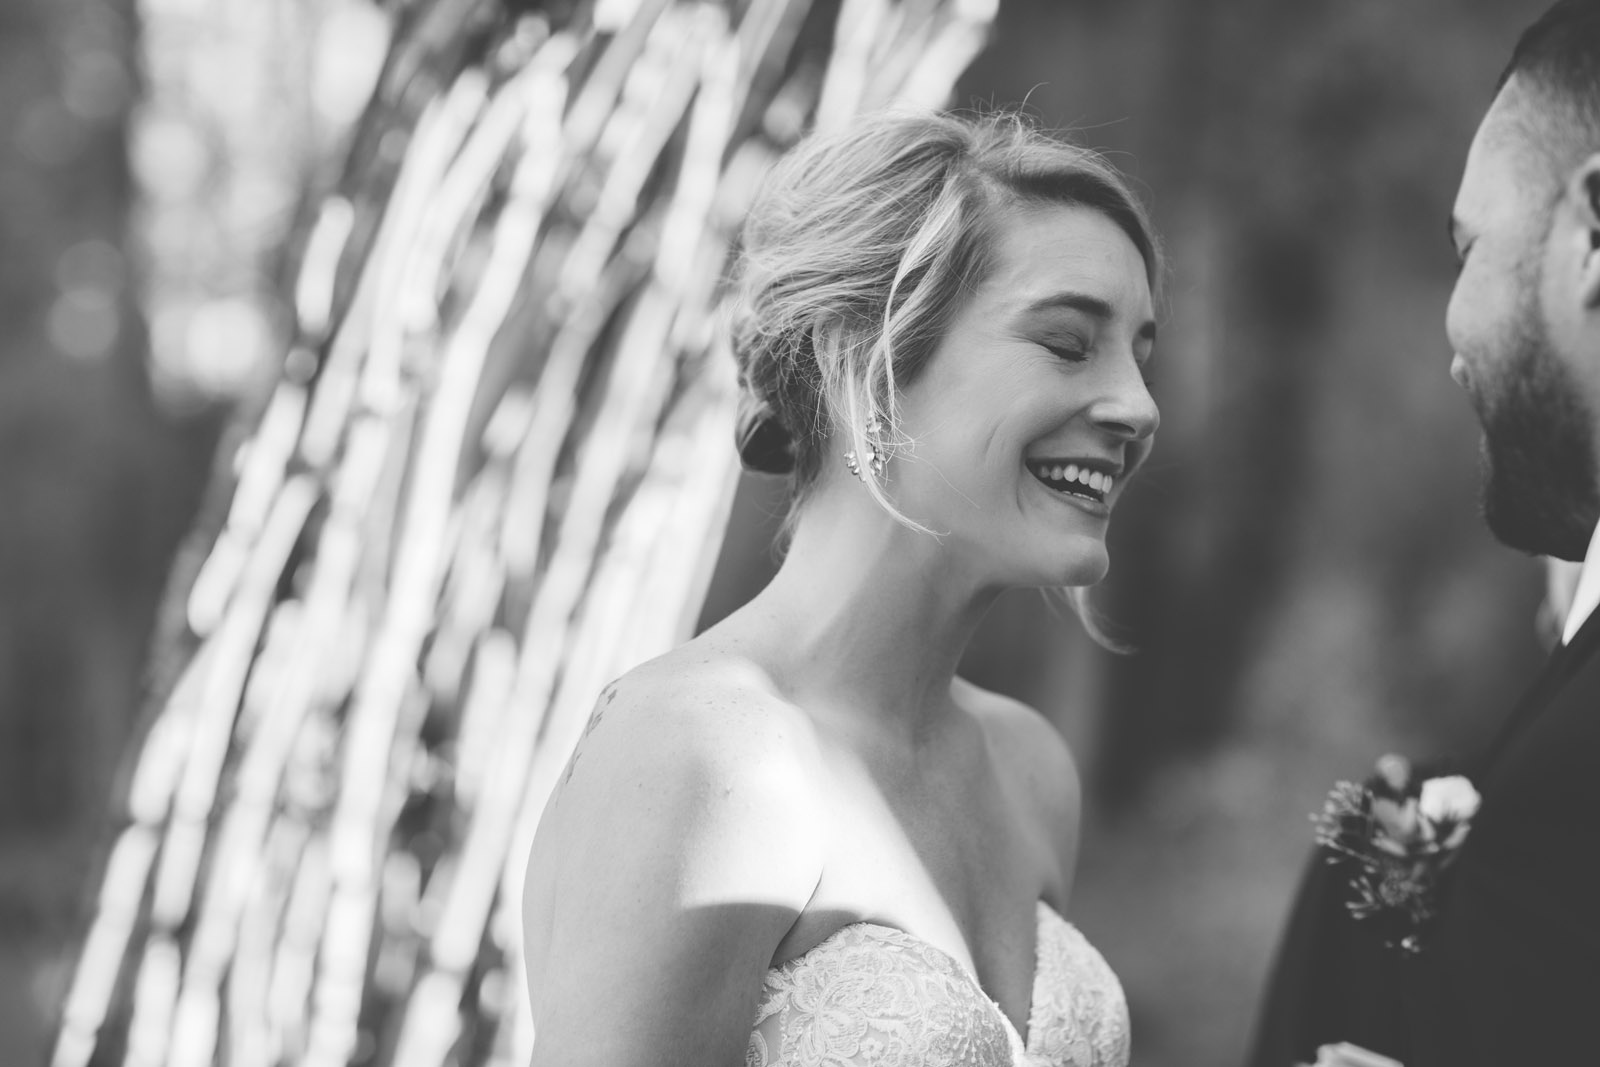 089-bride-and-groom-laughing-during-private-elopement-wedding-ceremony-in-durango-co-forest